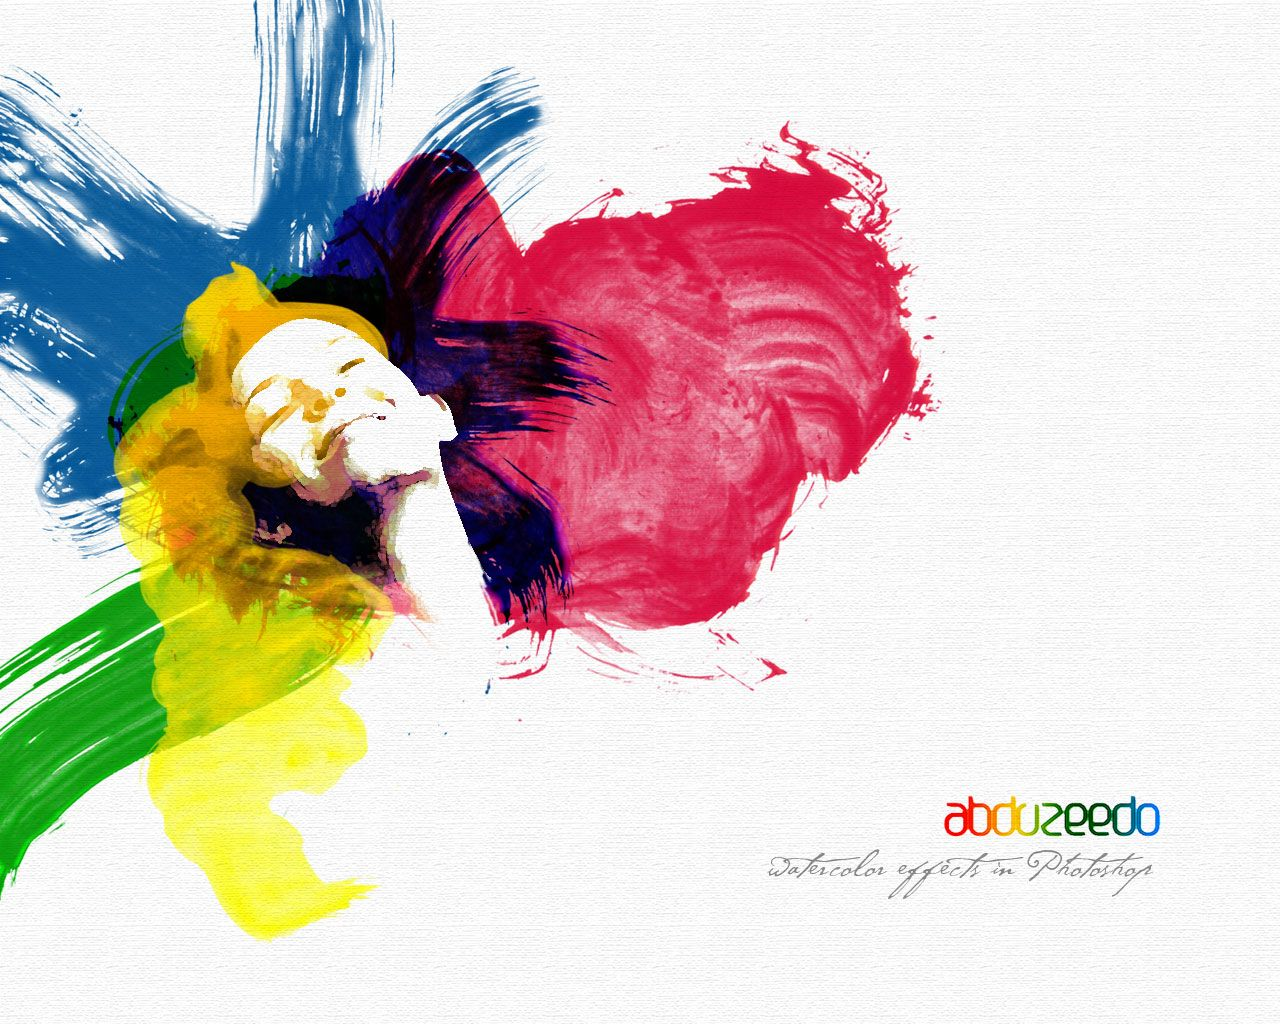 Watercolor effect in photoshop wallpaper abduzeedo design watercolor effect in photoshop wallpaper abduzeedo design inspiration tutorials baditri Choice Image